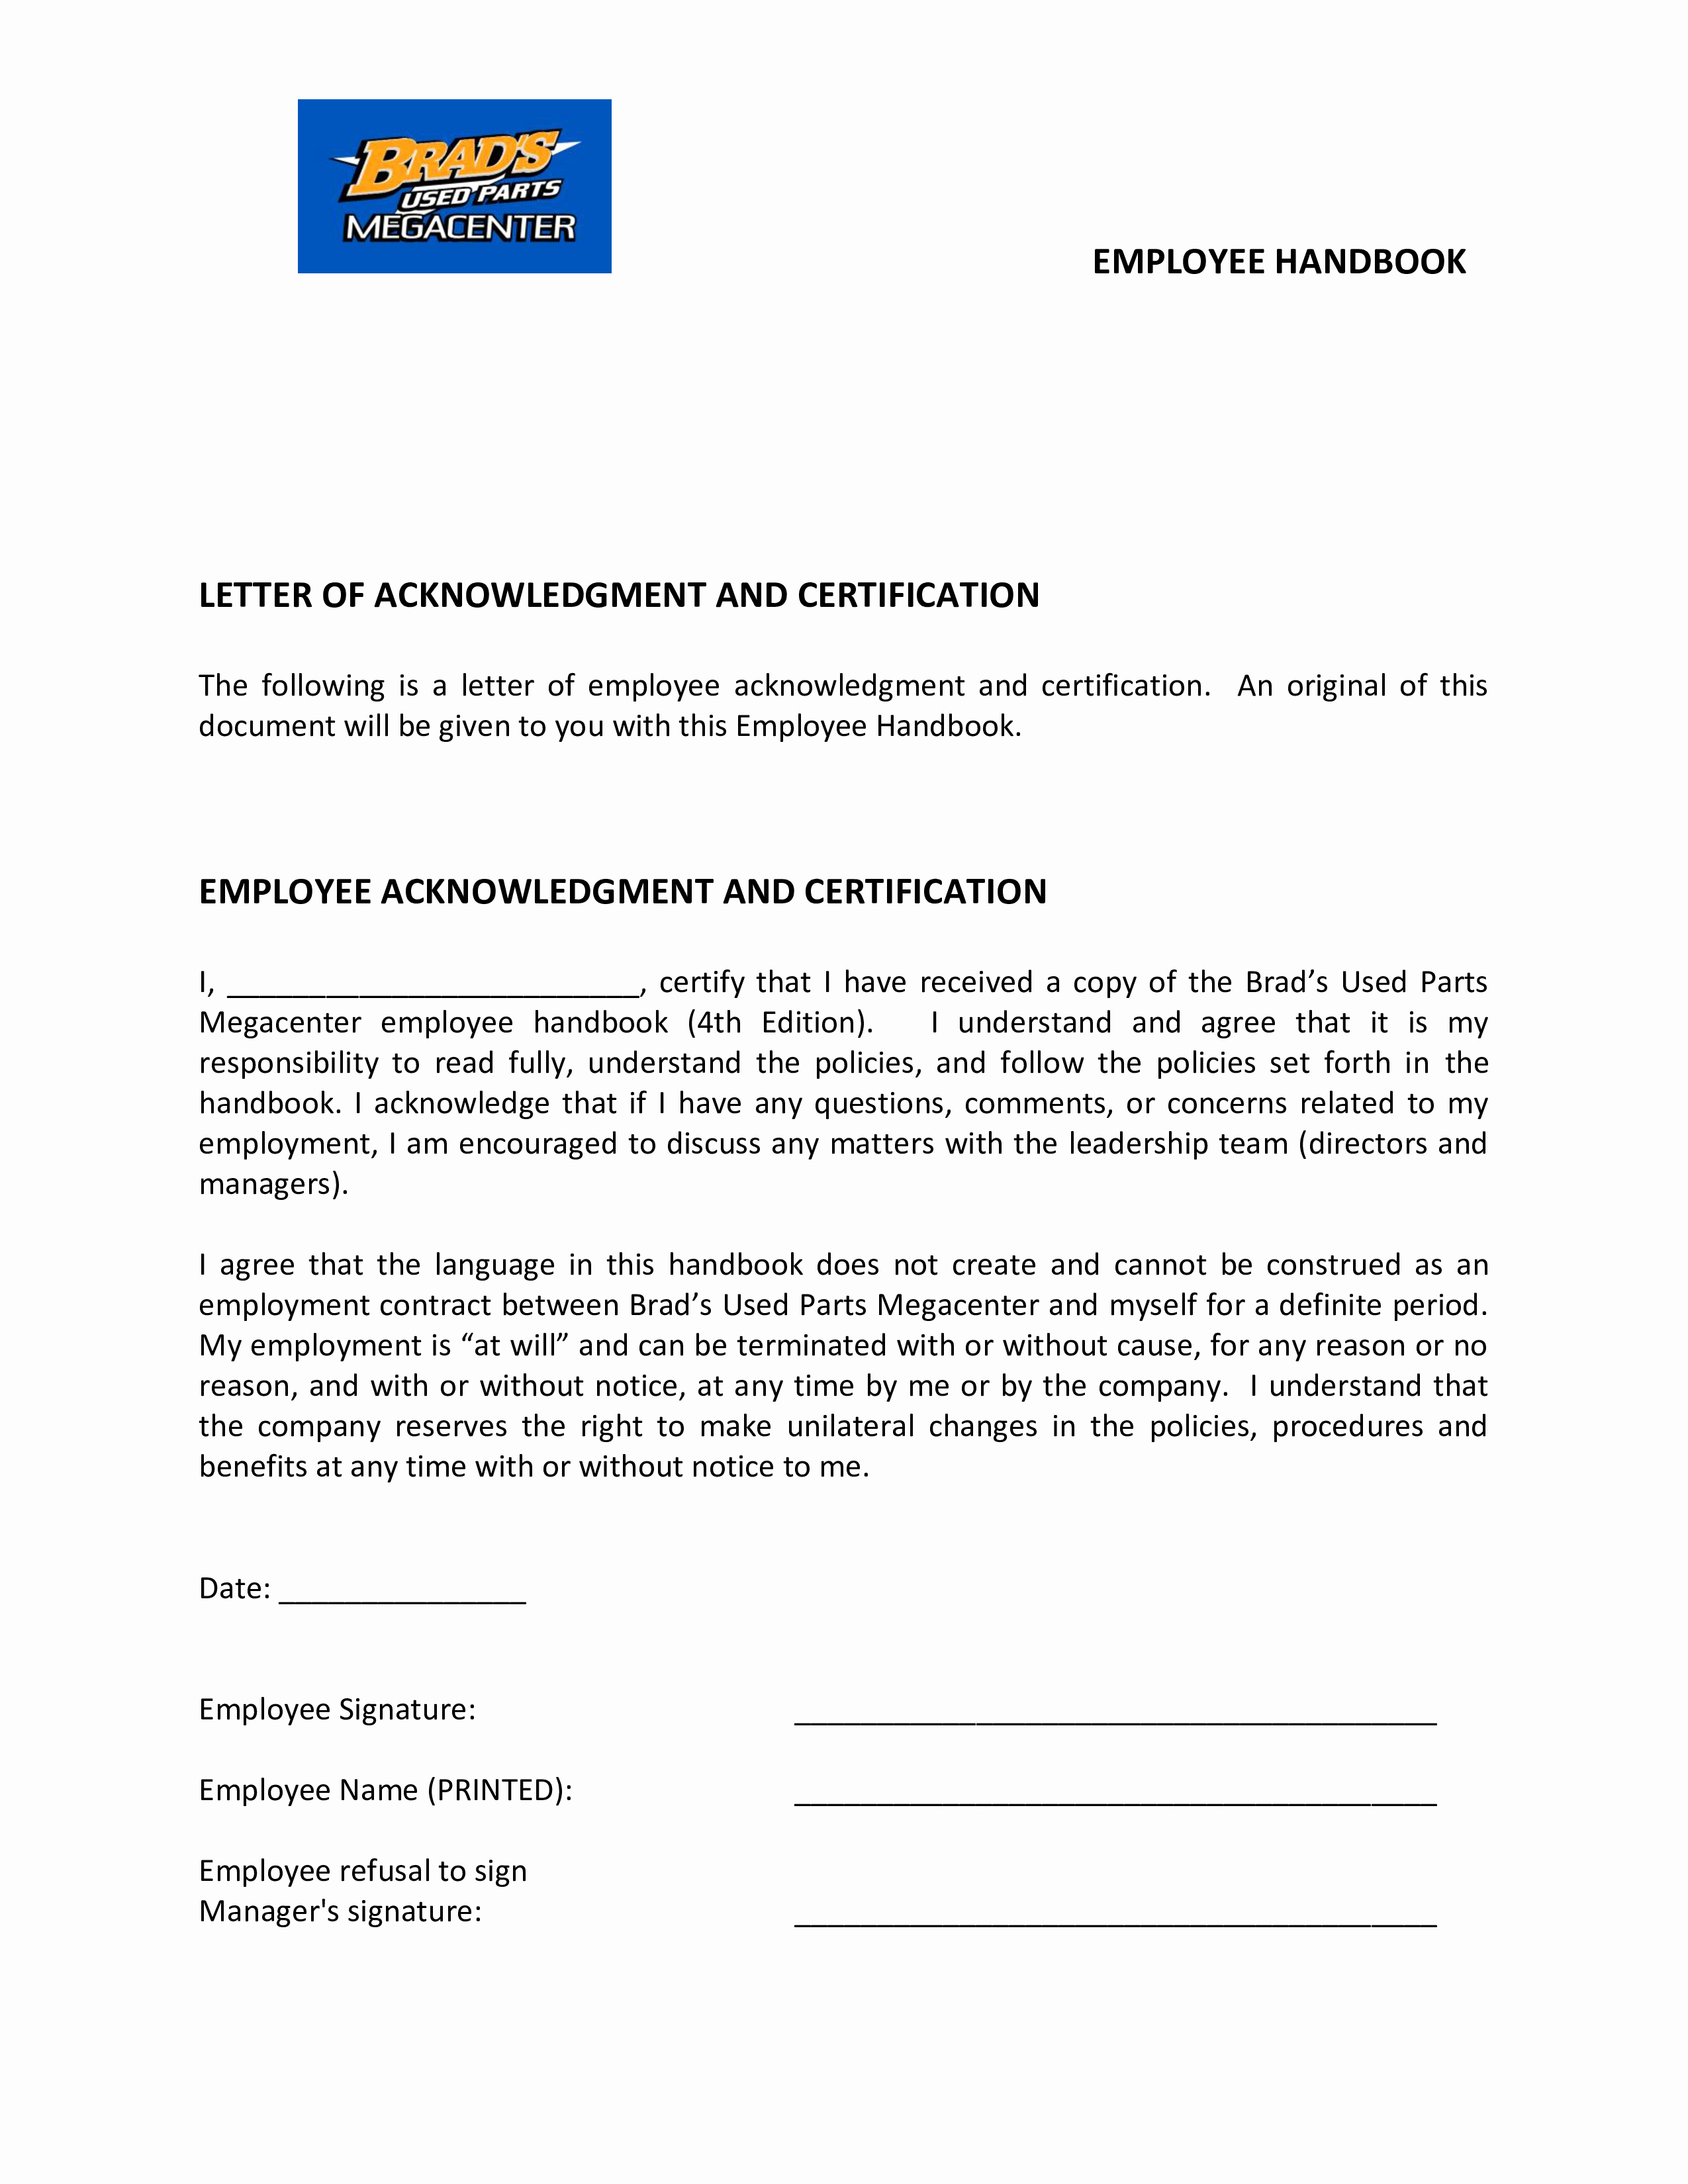 Employee Acknowledgement form Template New Free Employee Handbook Acknowledgement Letter